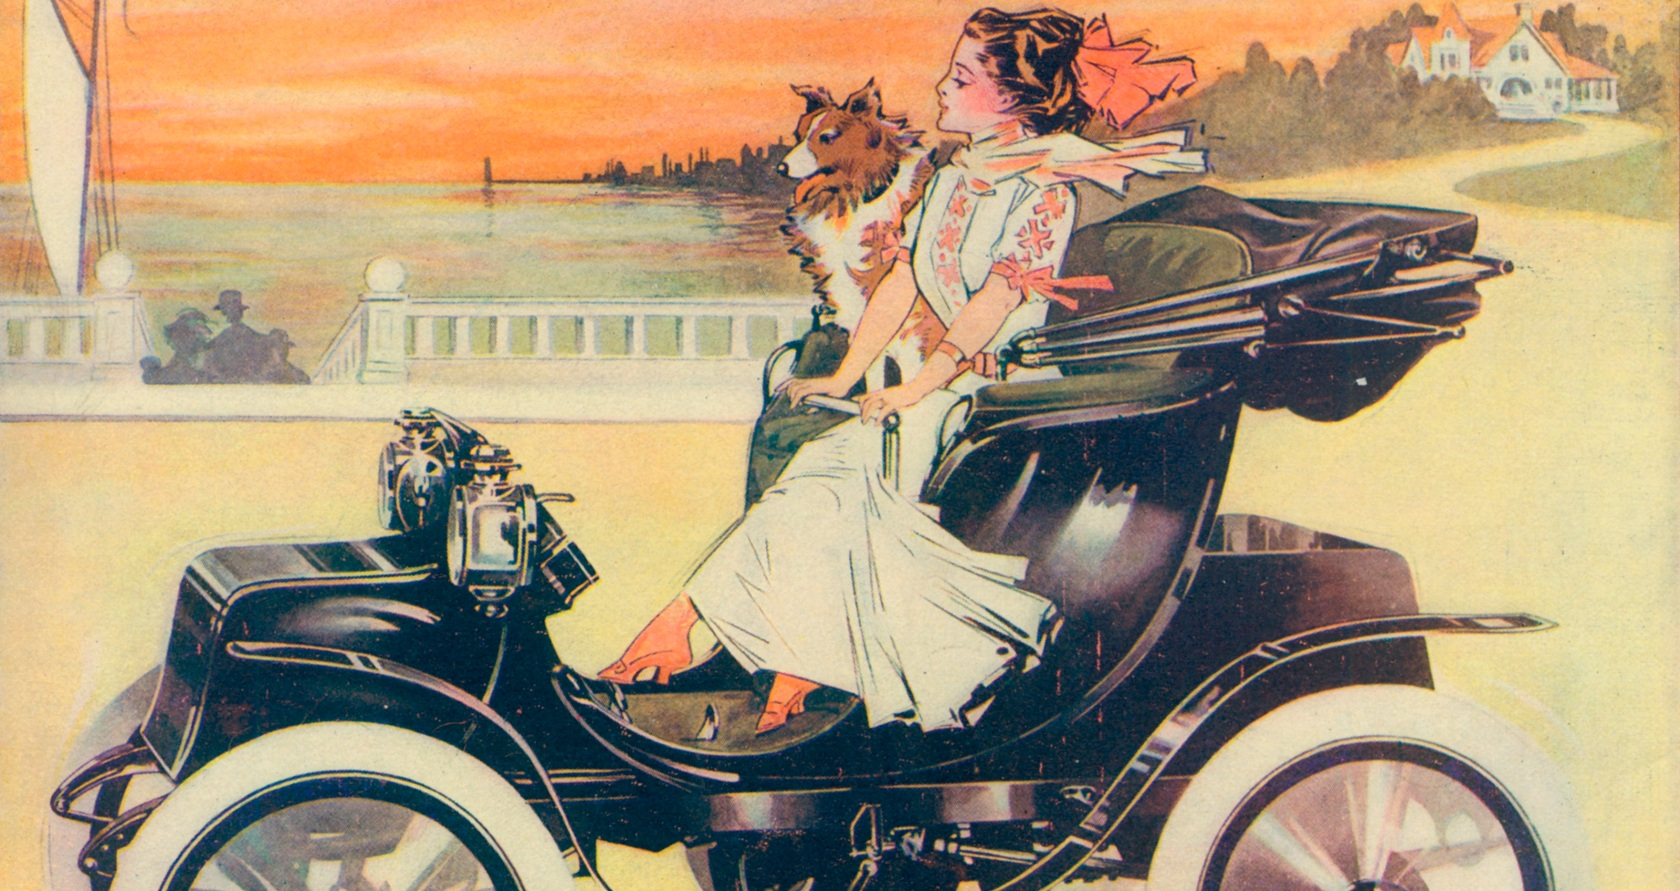 We Could Have Had Electric Cars from the Very Beginning